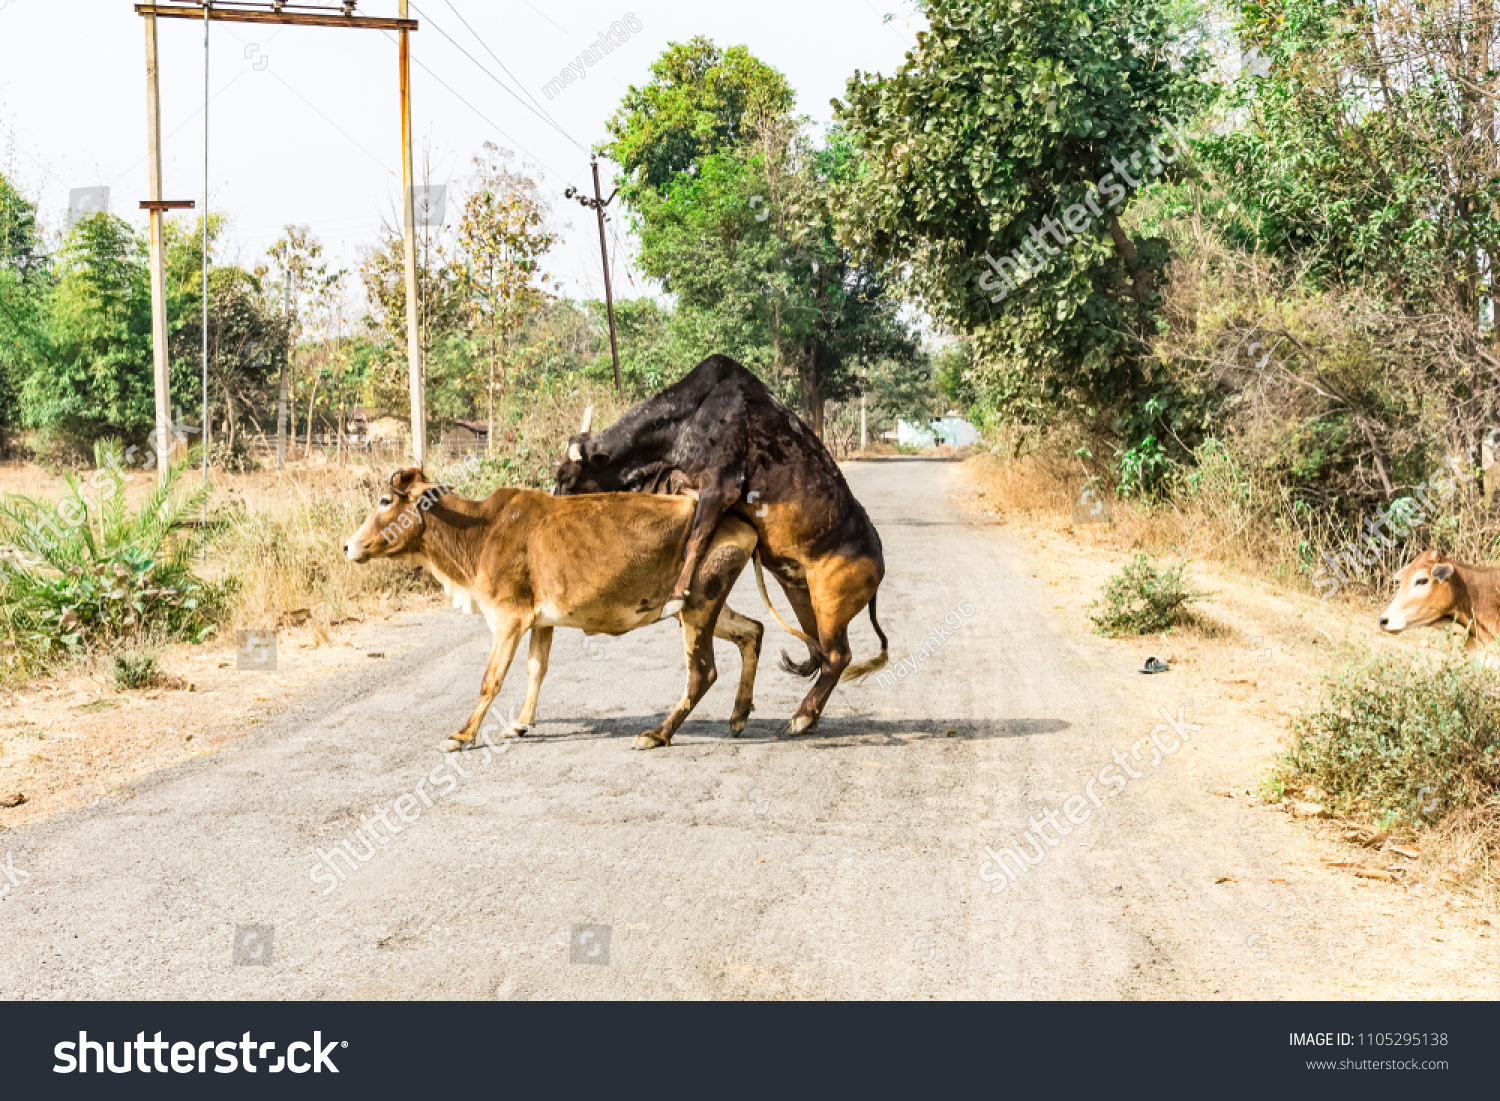 bull sex with a cow in middle of road in rural village.